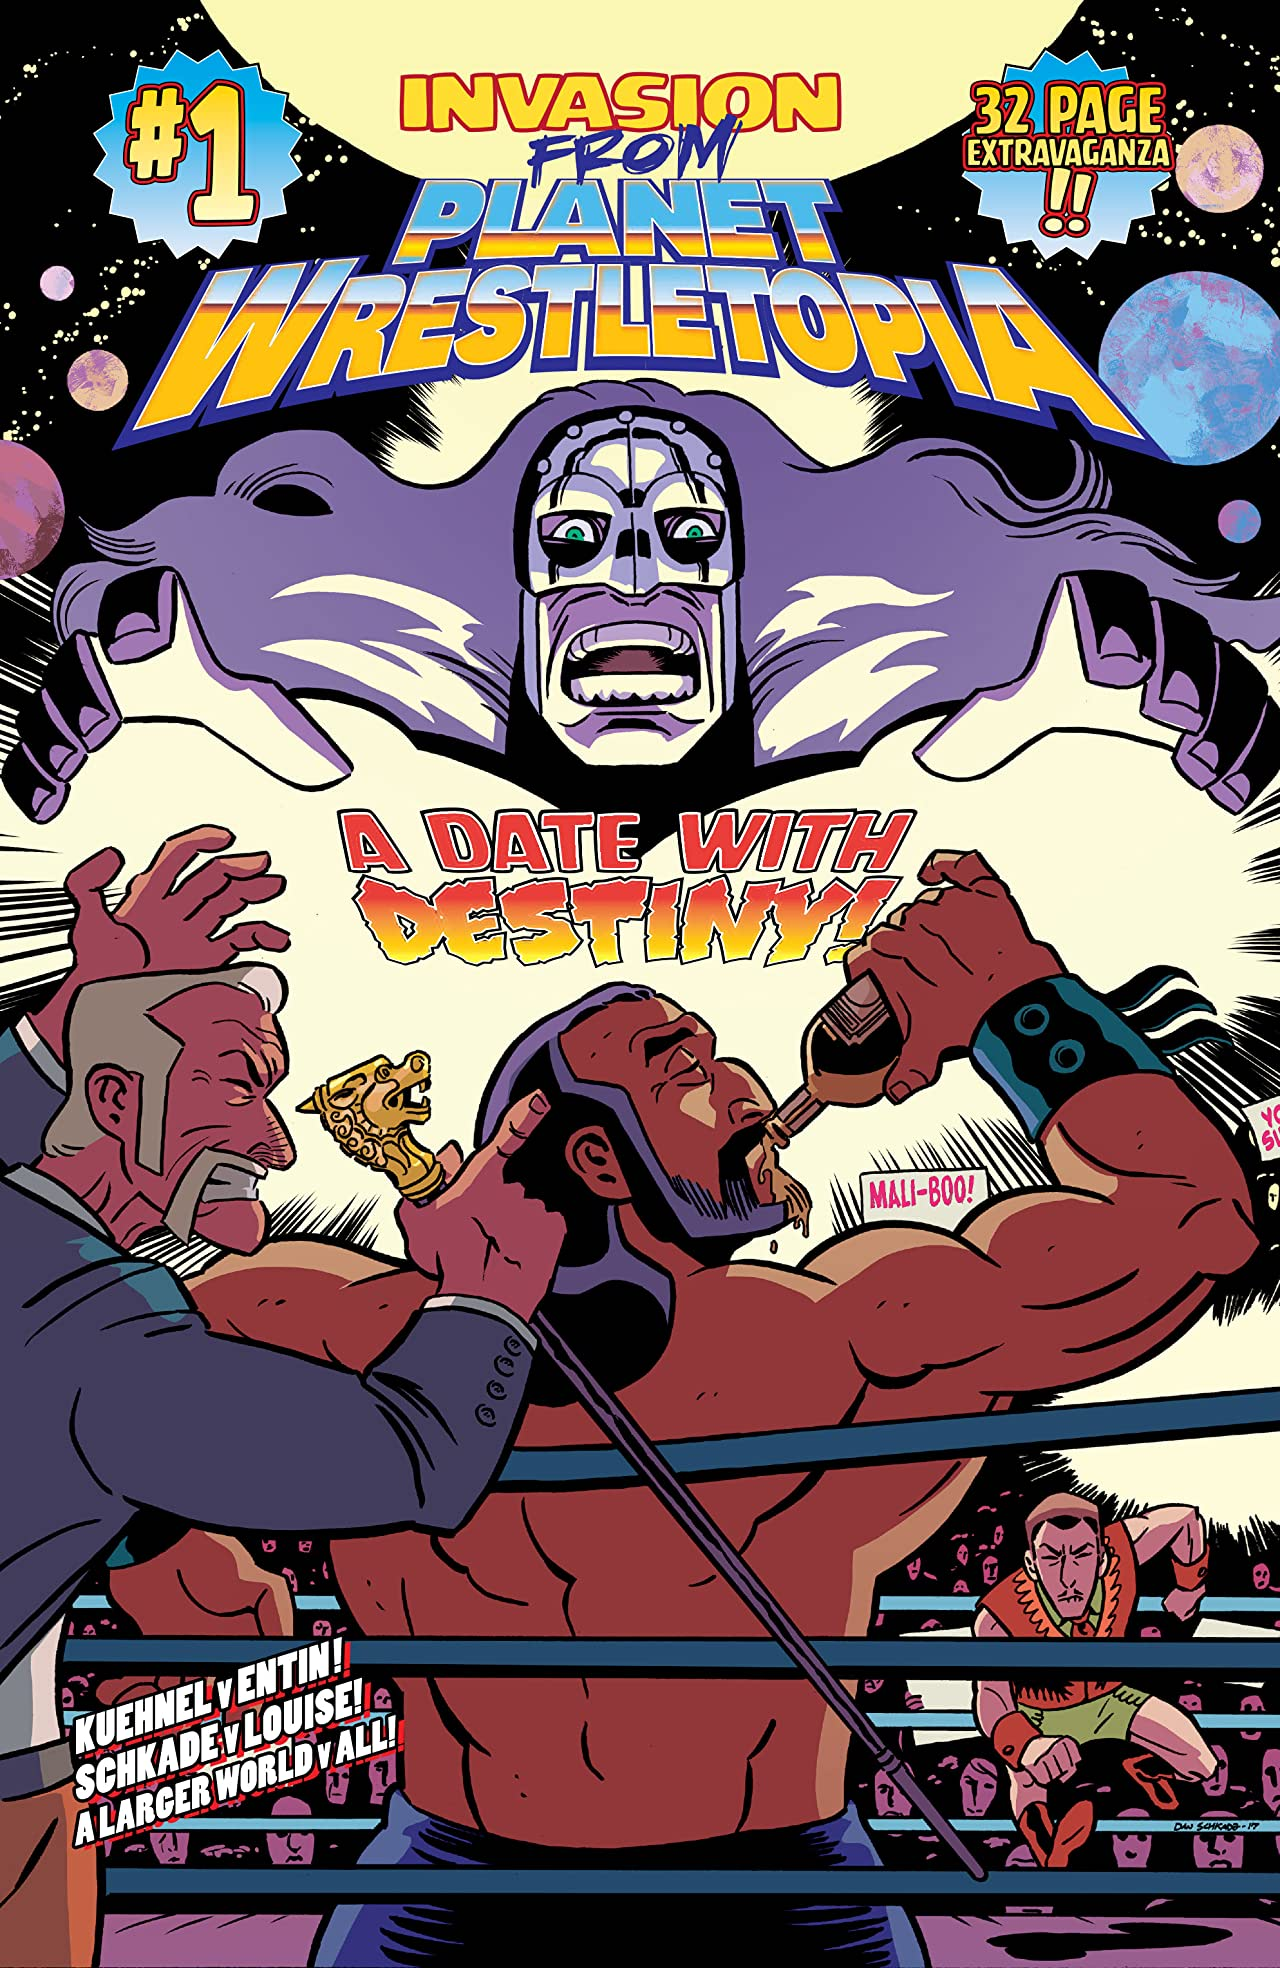 Invasion from Planet Wrestletopia #1